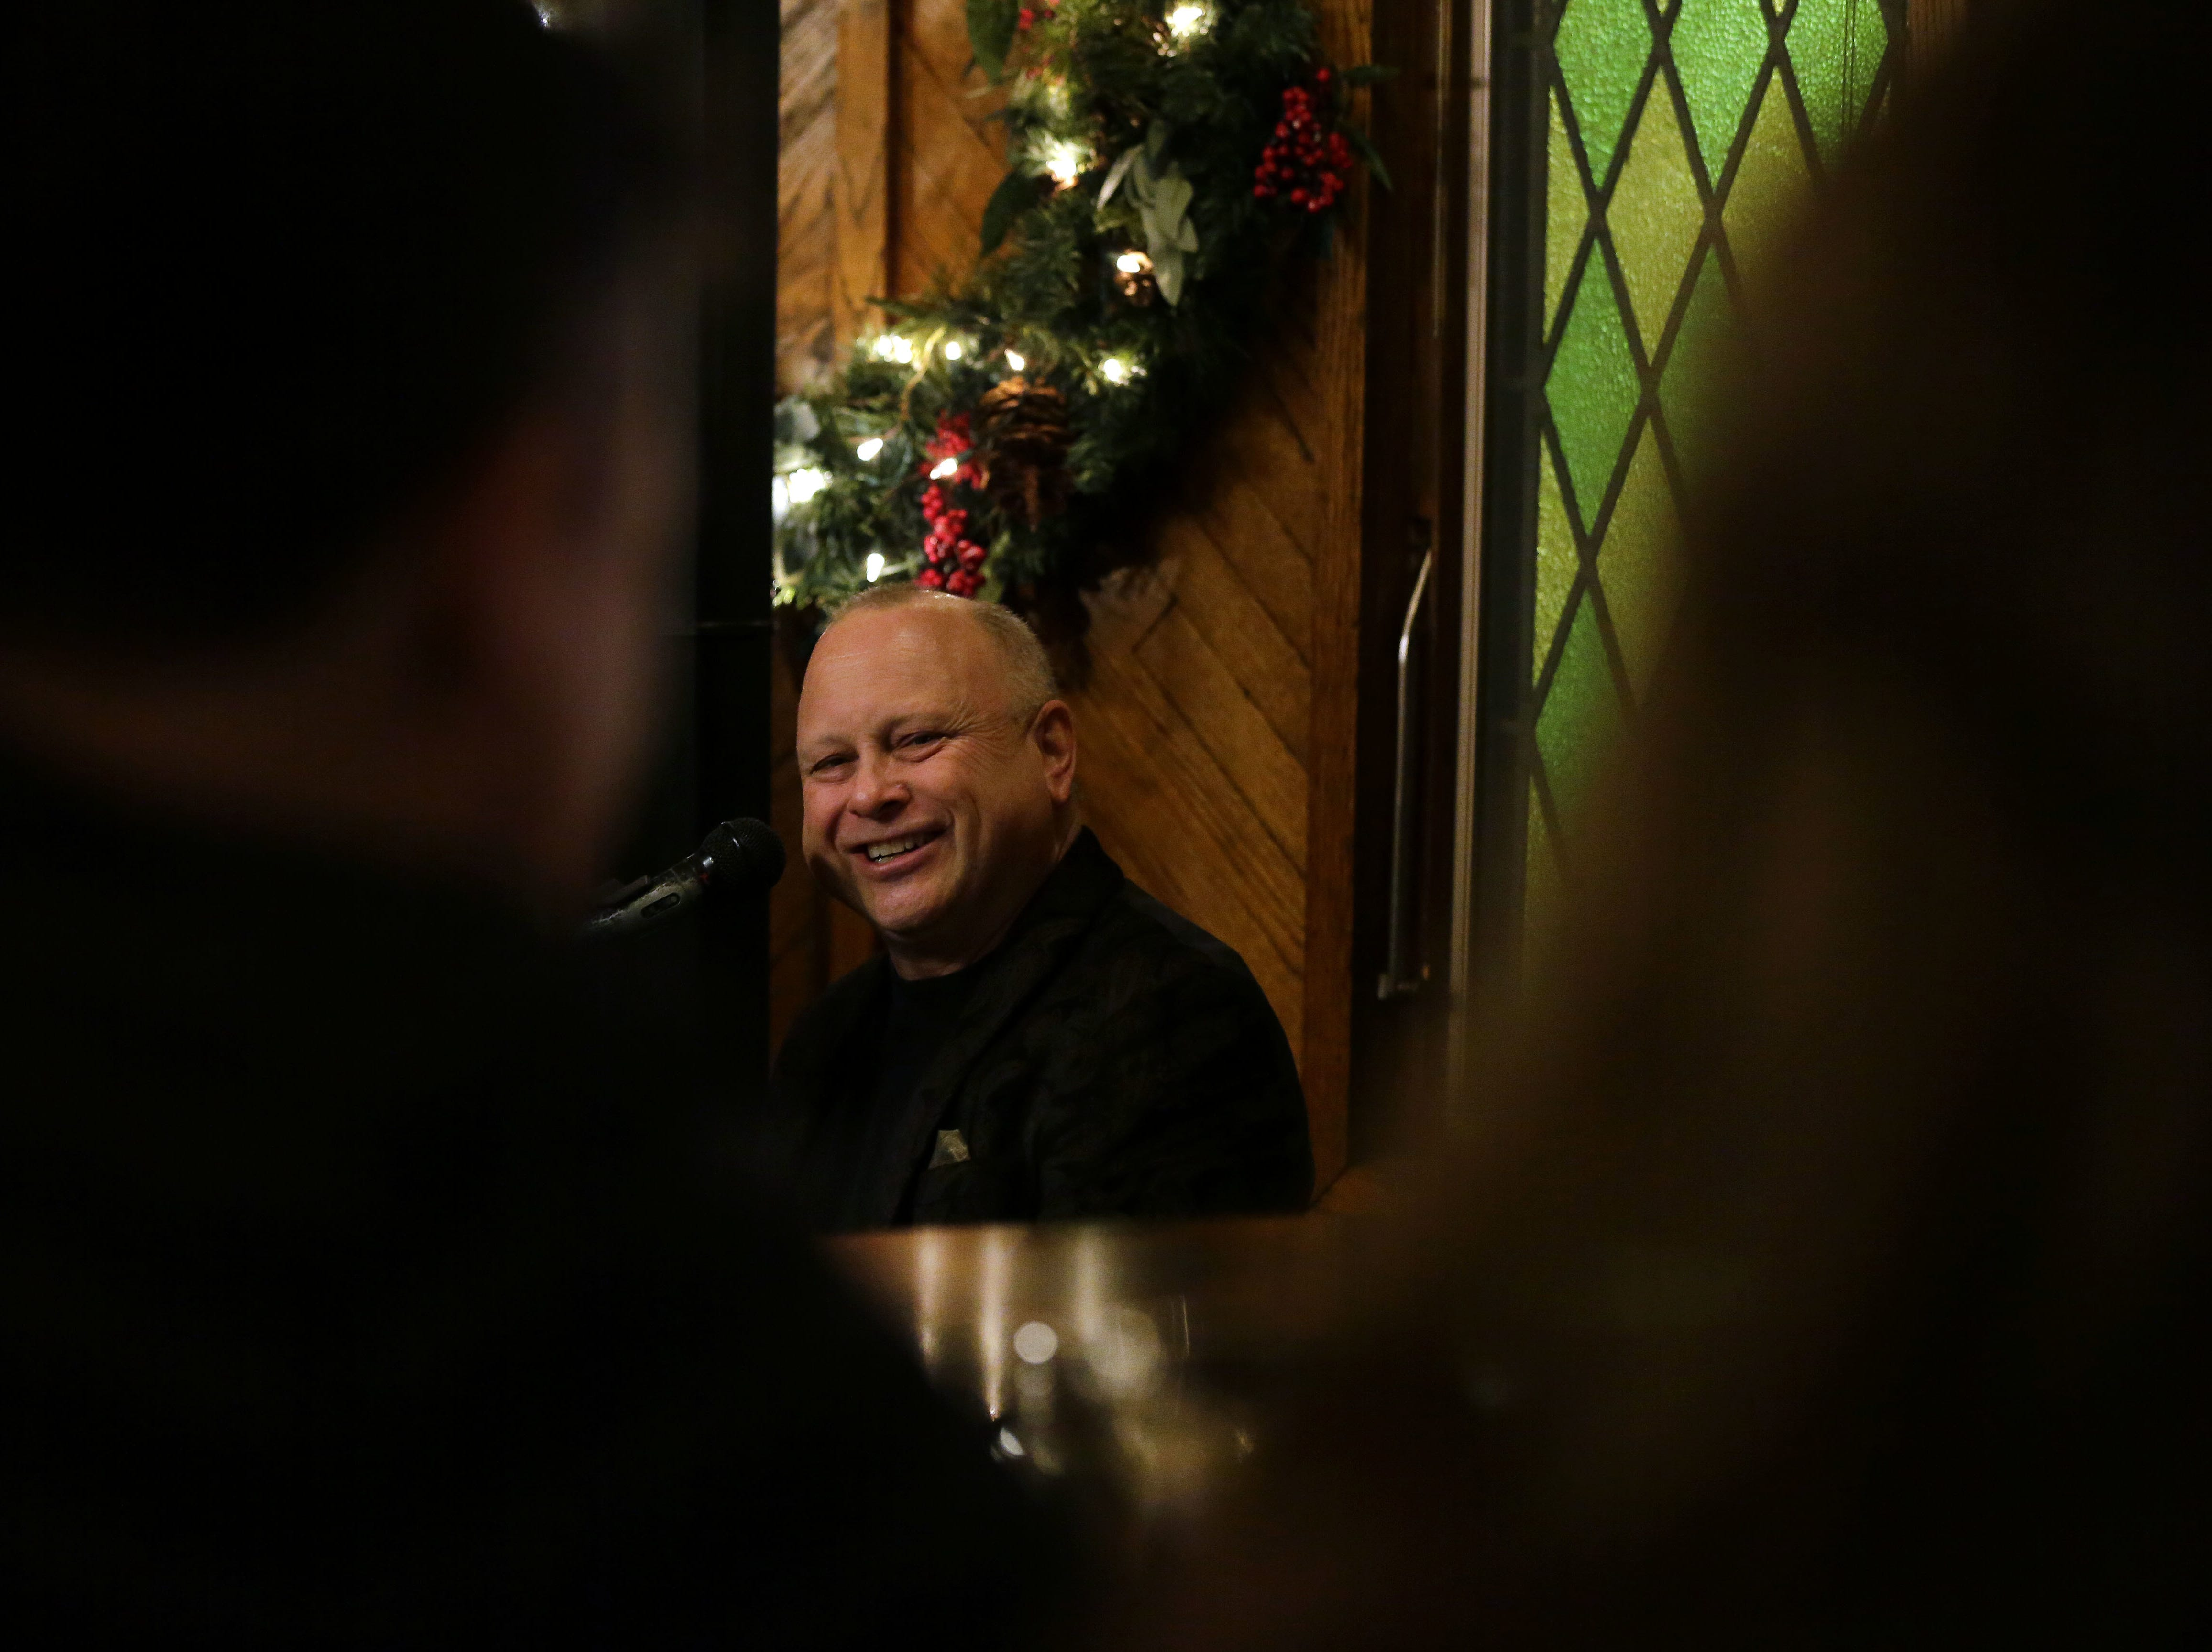 For more than 35 years, Bill Steinert of Oshkosh has been a weekend fixture at George's Steak House in Appleton.